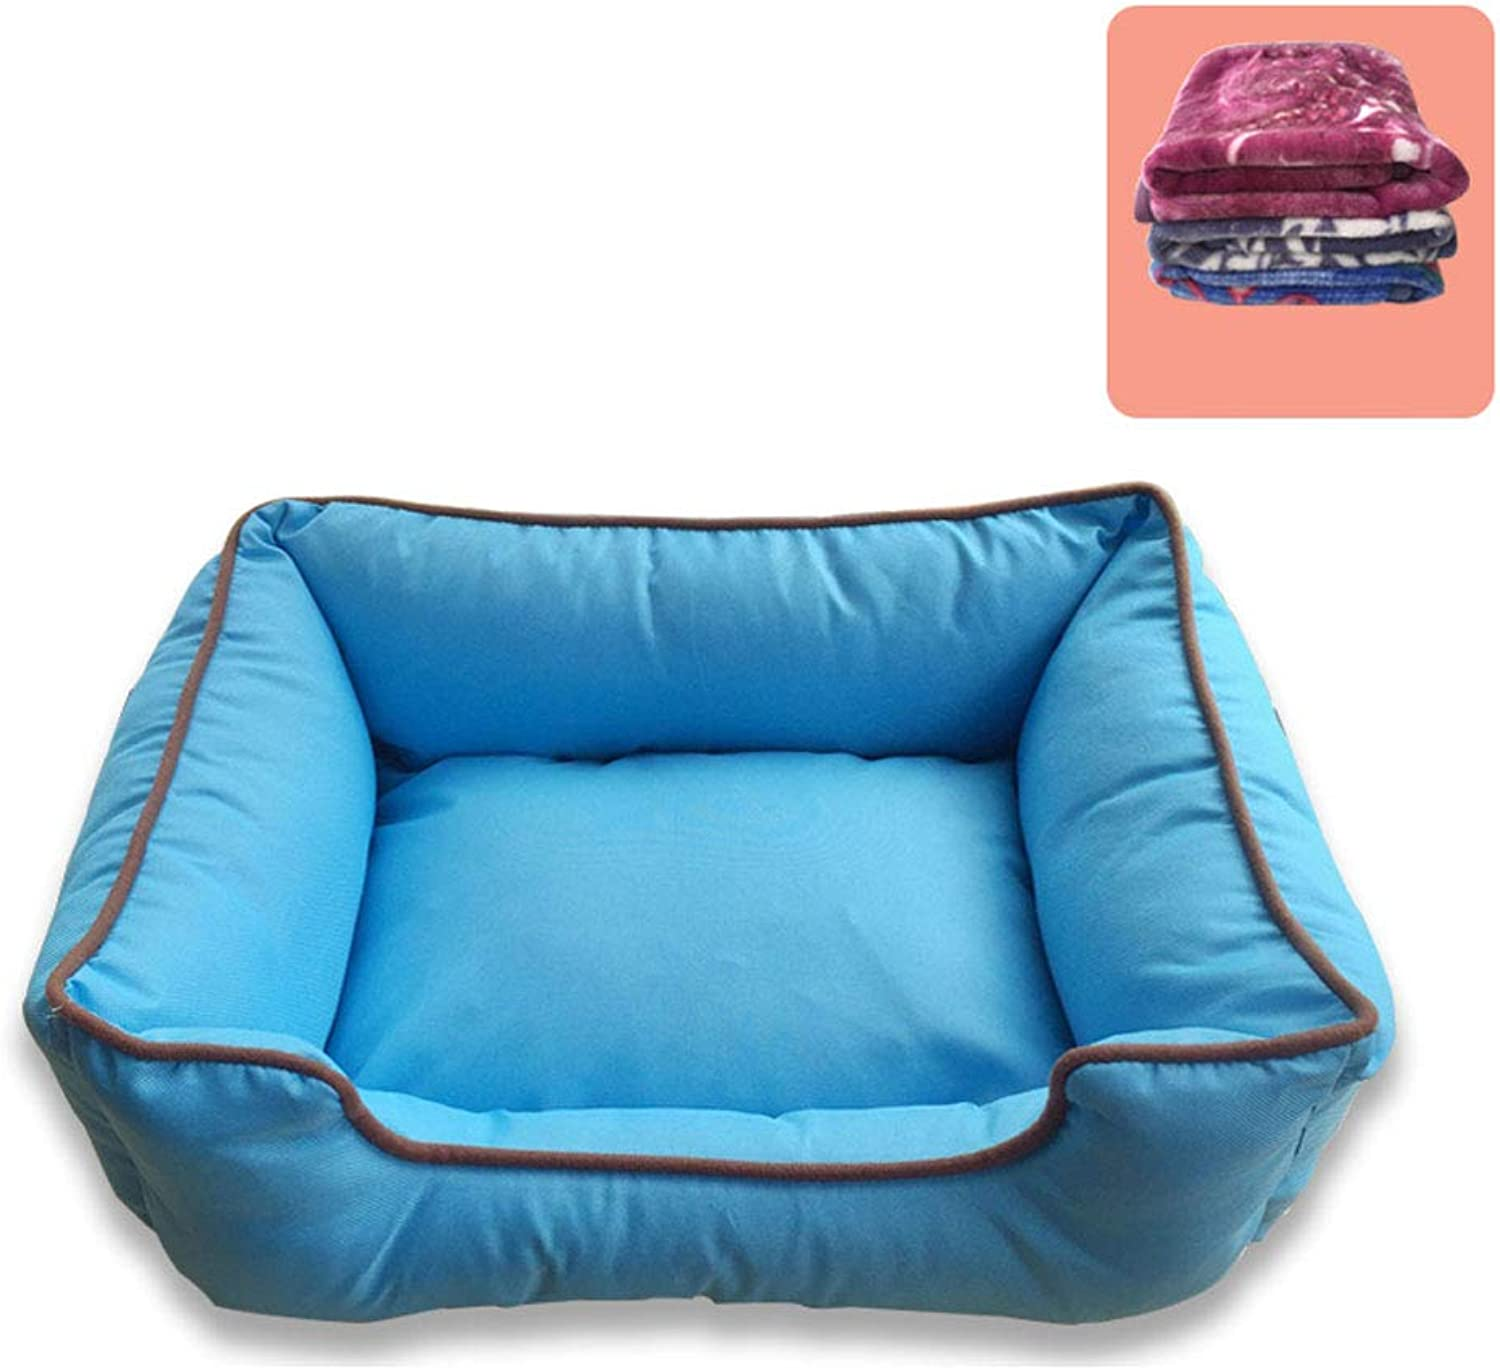 C_1X Kennel, Winter, Warm, Washable, Cat Litter, Dog Mat, Small and Medium Dogs, Indoor, Dog Bed, Pet Supplies, Pet Litter, House((bluee, pink Red, Dark Green),